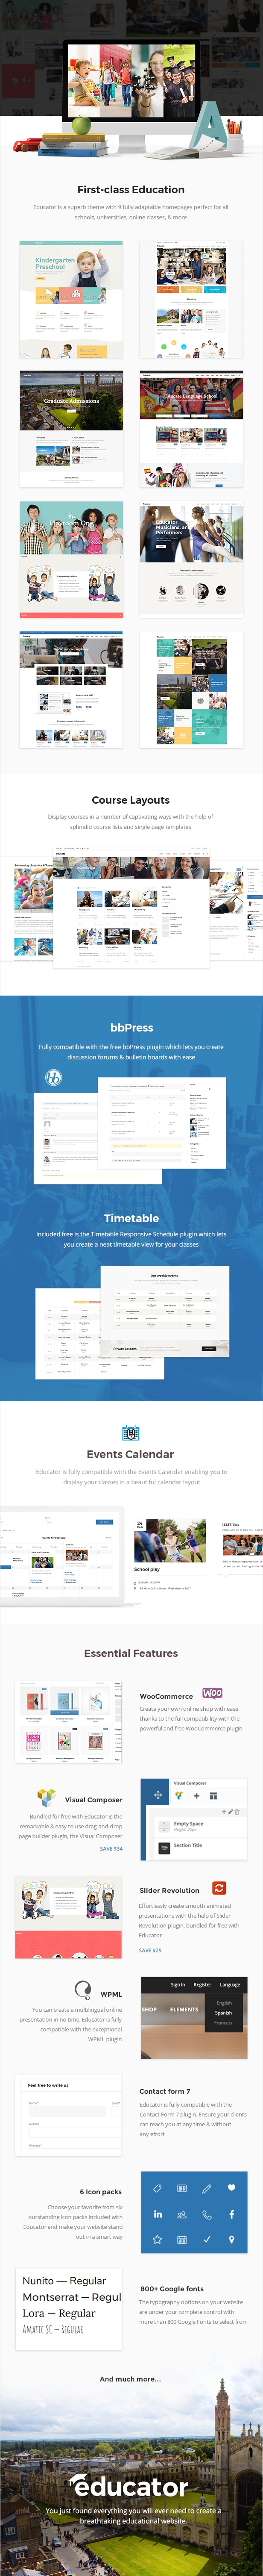 WordPress theme Educator - An Education and Learning Management System Theme (Education)